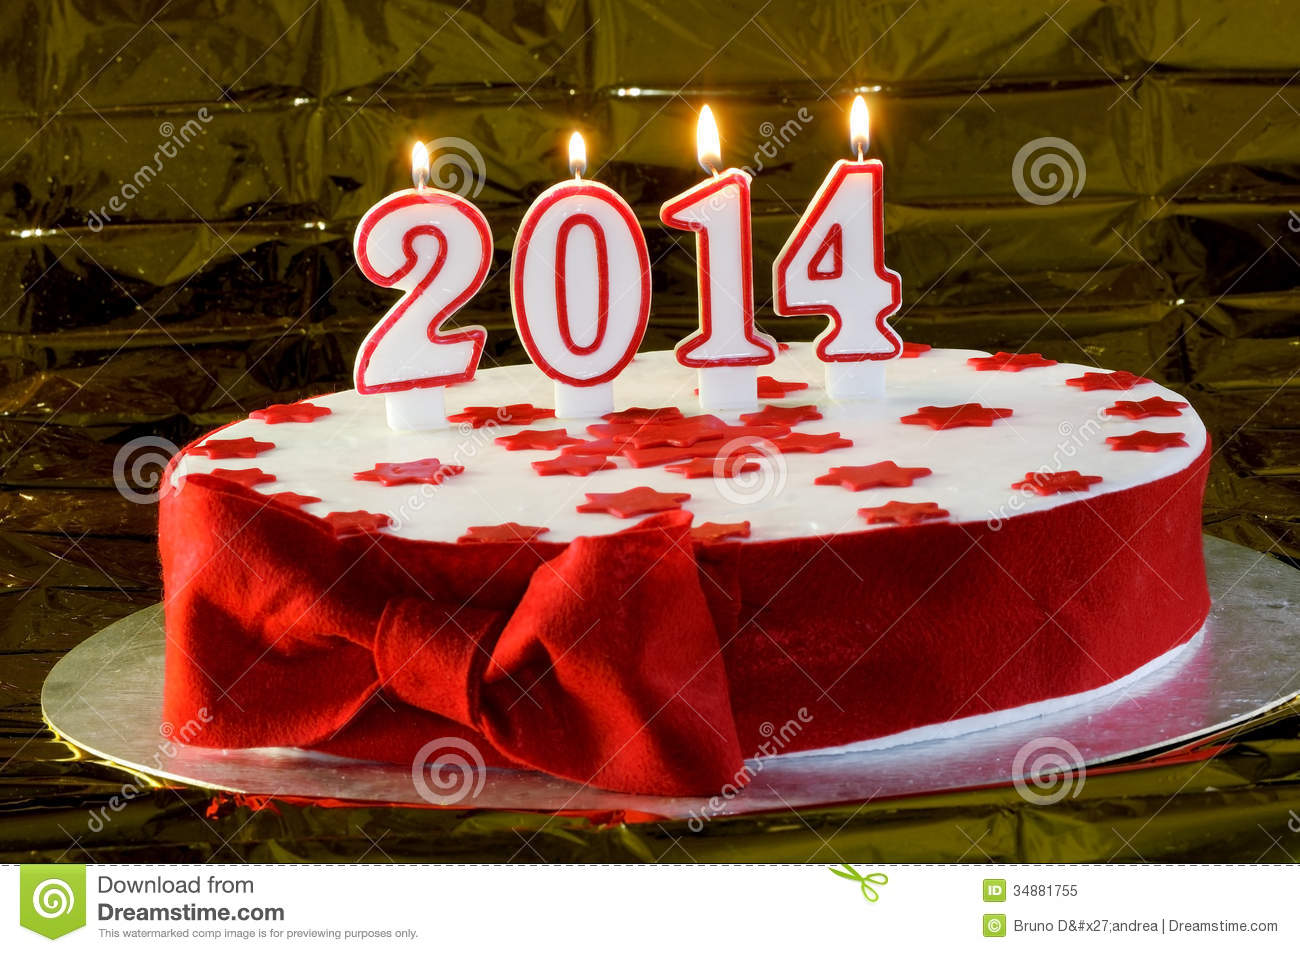 Beautiful Cake For The New Year Stock Image - Image: 34881755